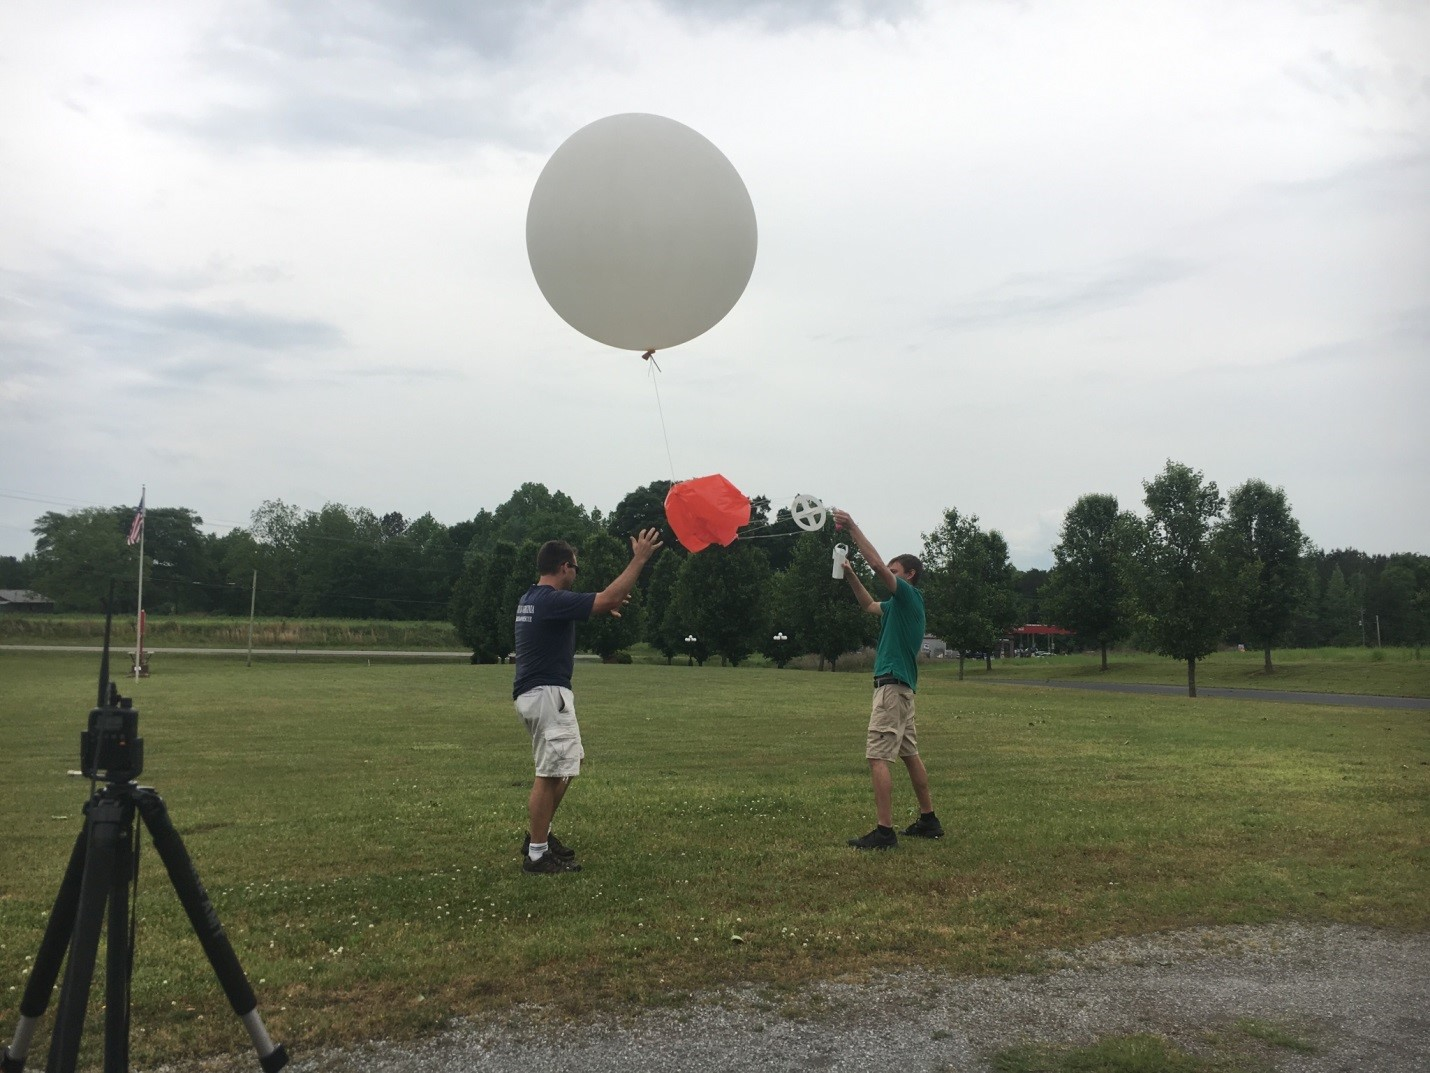 researchers launch weather balloon during VORTEX-SE